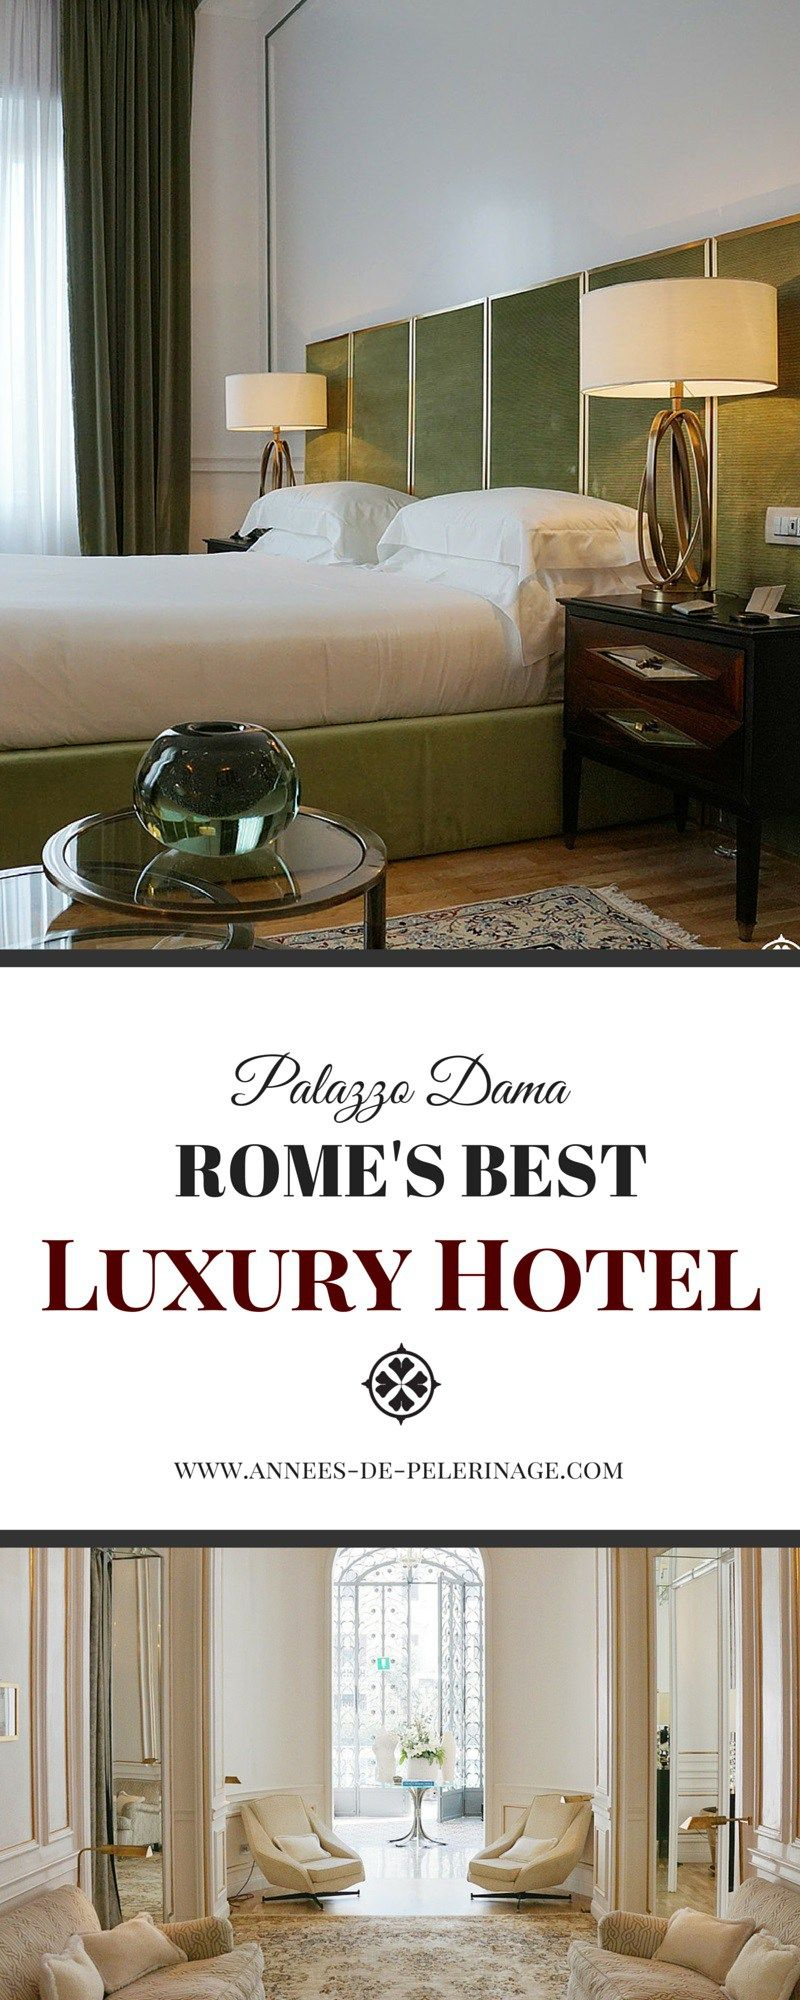 A review of the unique Palazzo Dama luxury hotel in Rome. Featuring outstanding contemporary design and perfect service, this might just be the best hotel in Rome. Click to read the full review.